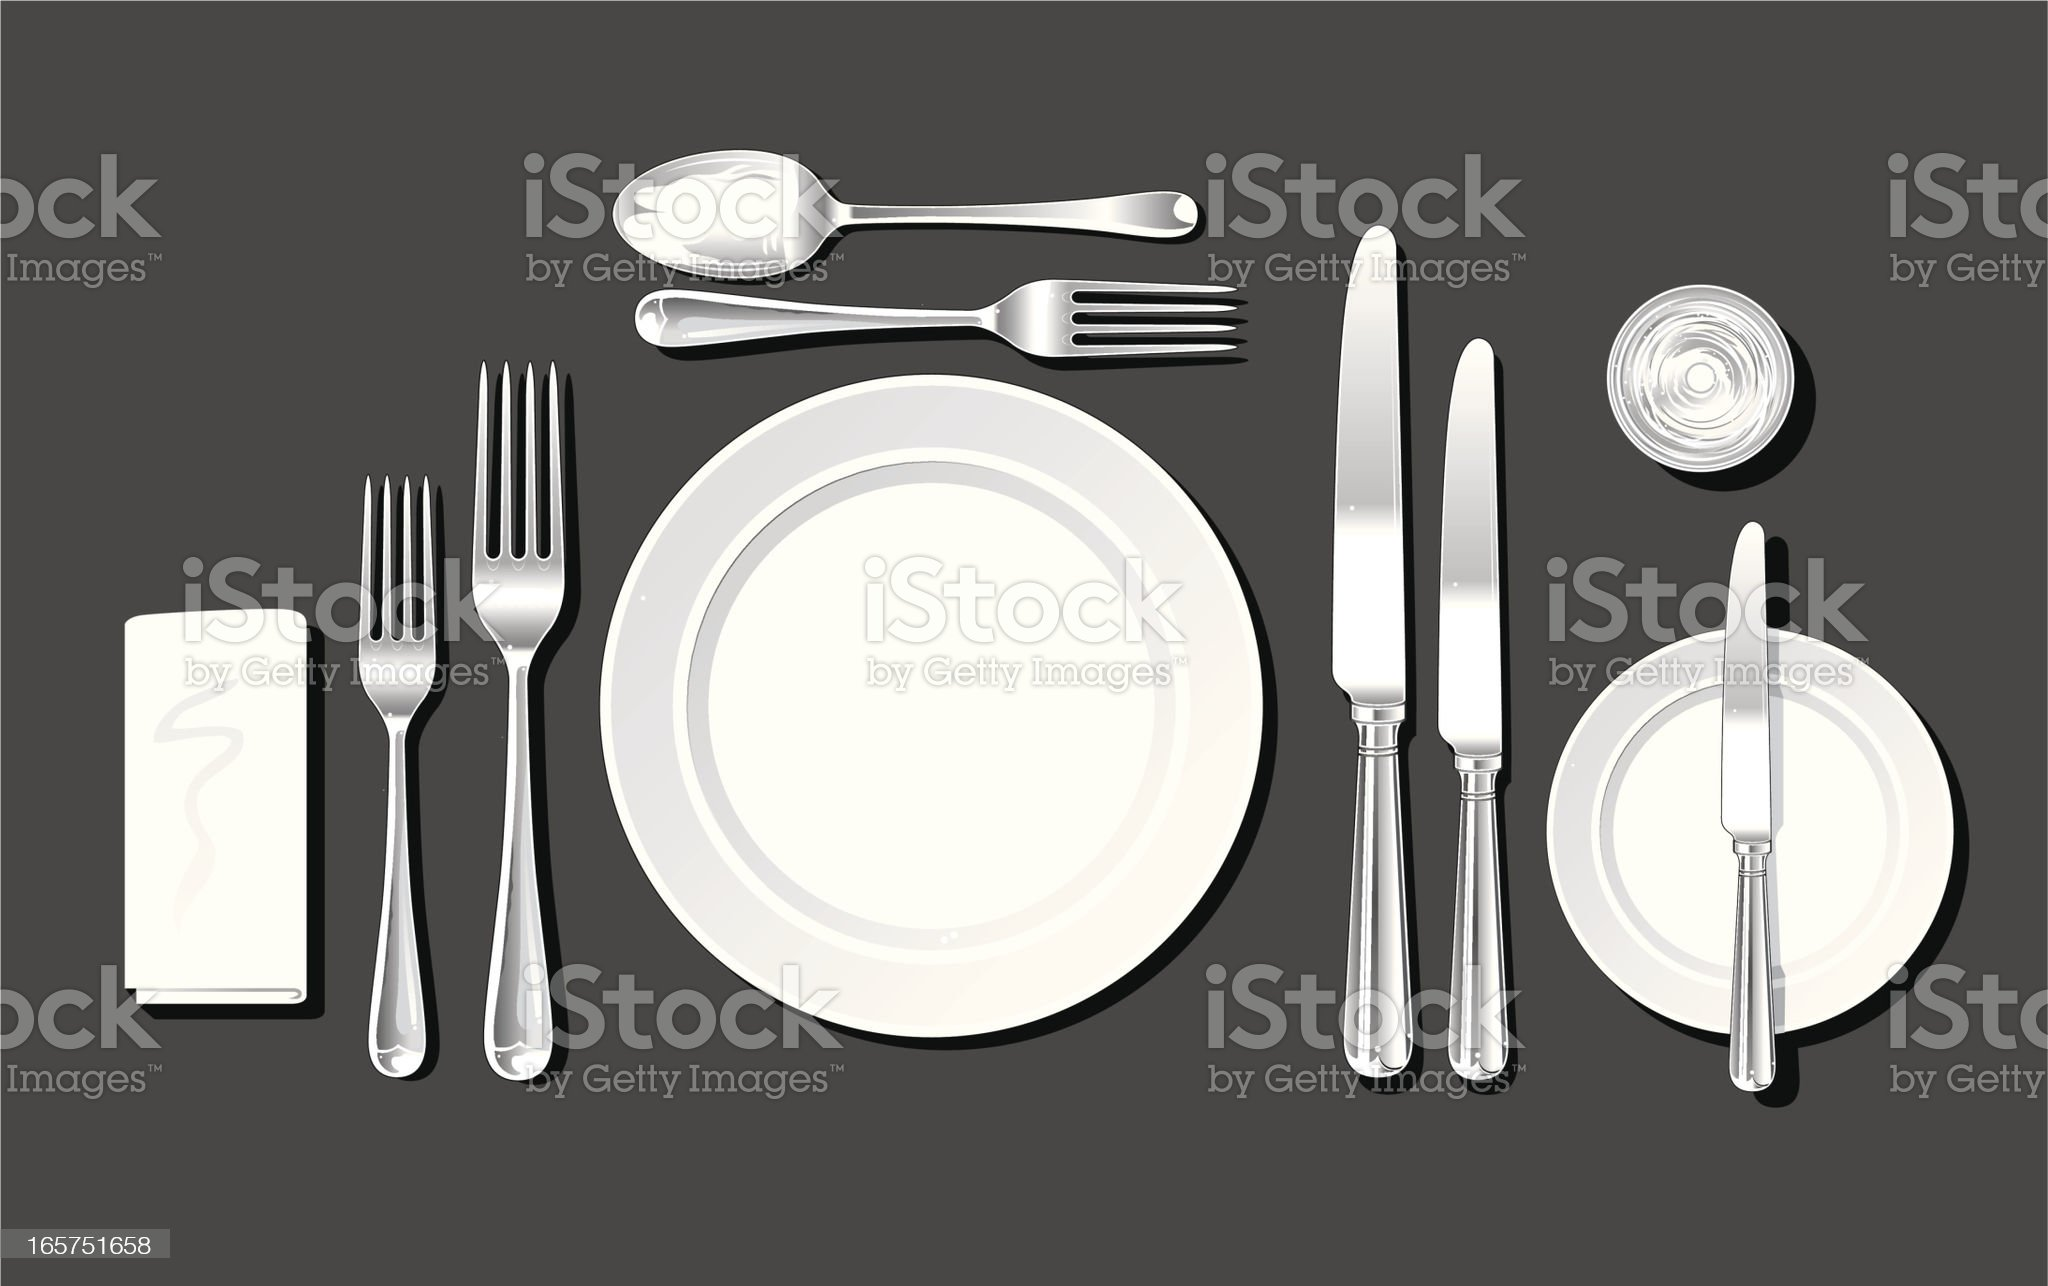 Realistic place setting royalty-free stock vector art